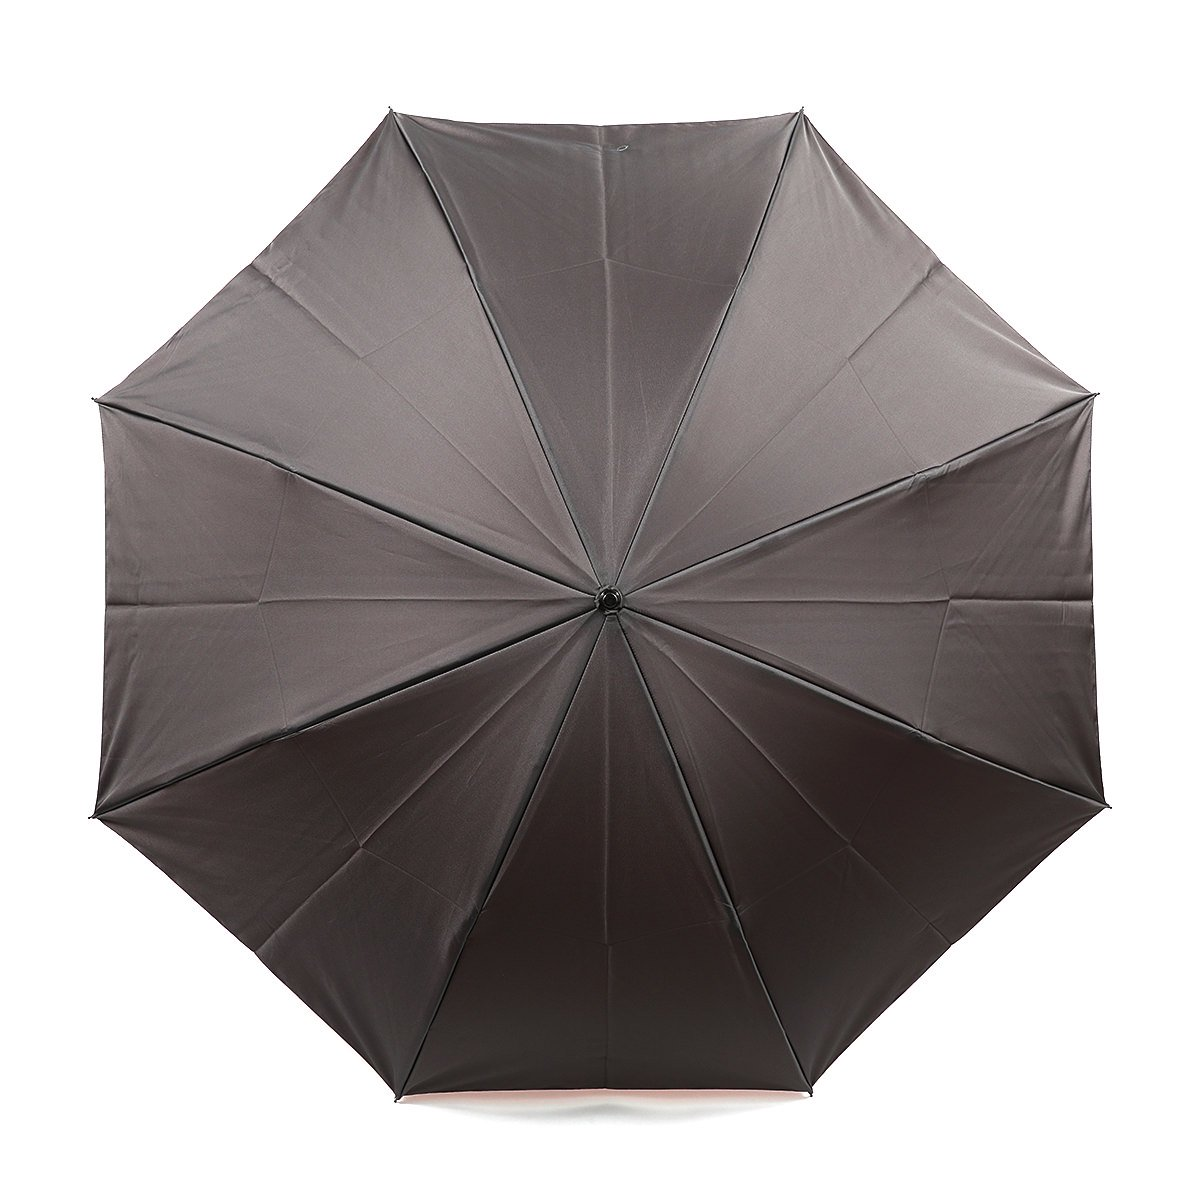 608K SOLID FOLDING UMBRELLA 詳細画像2